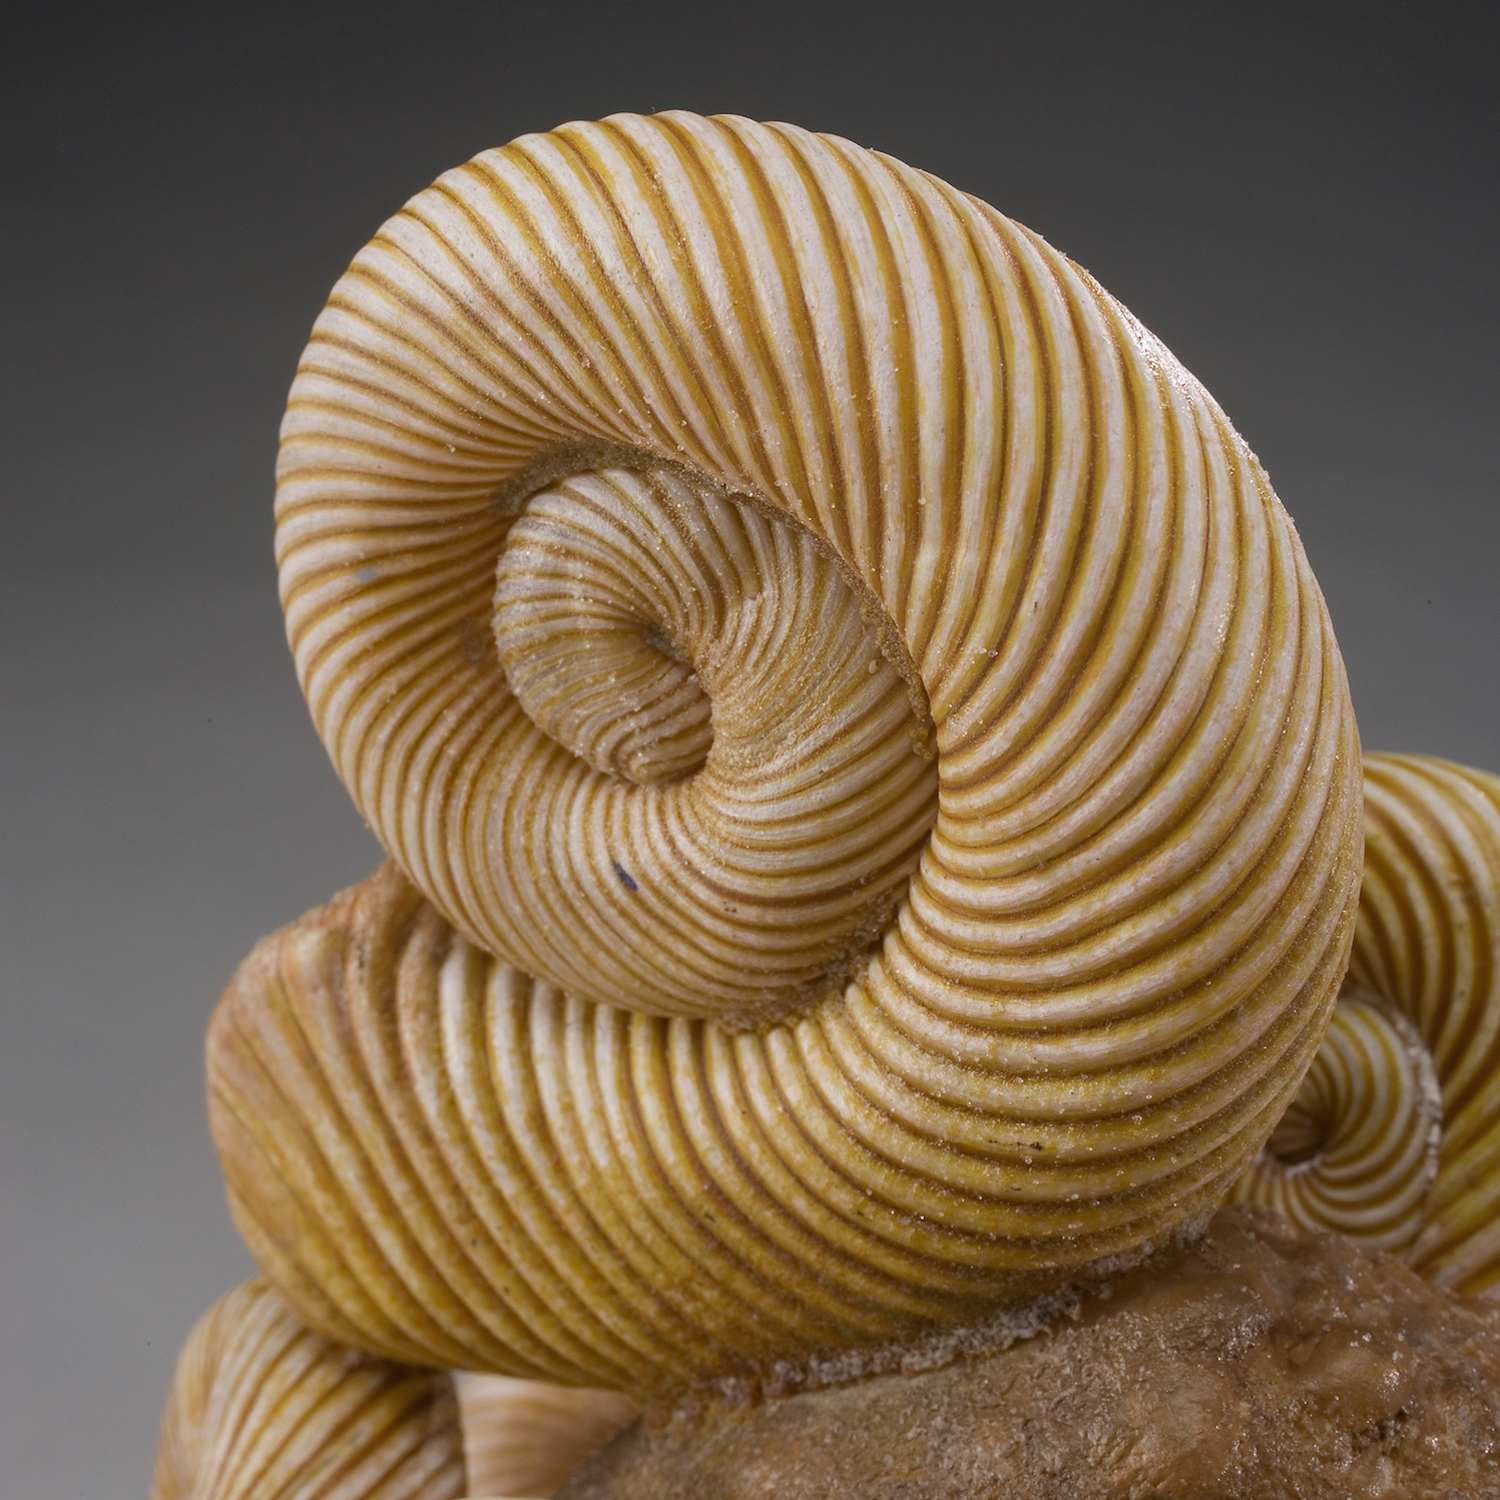 Stone and Fossil Series